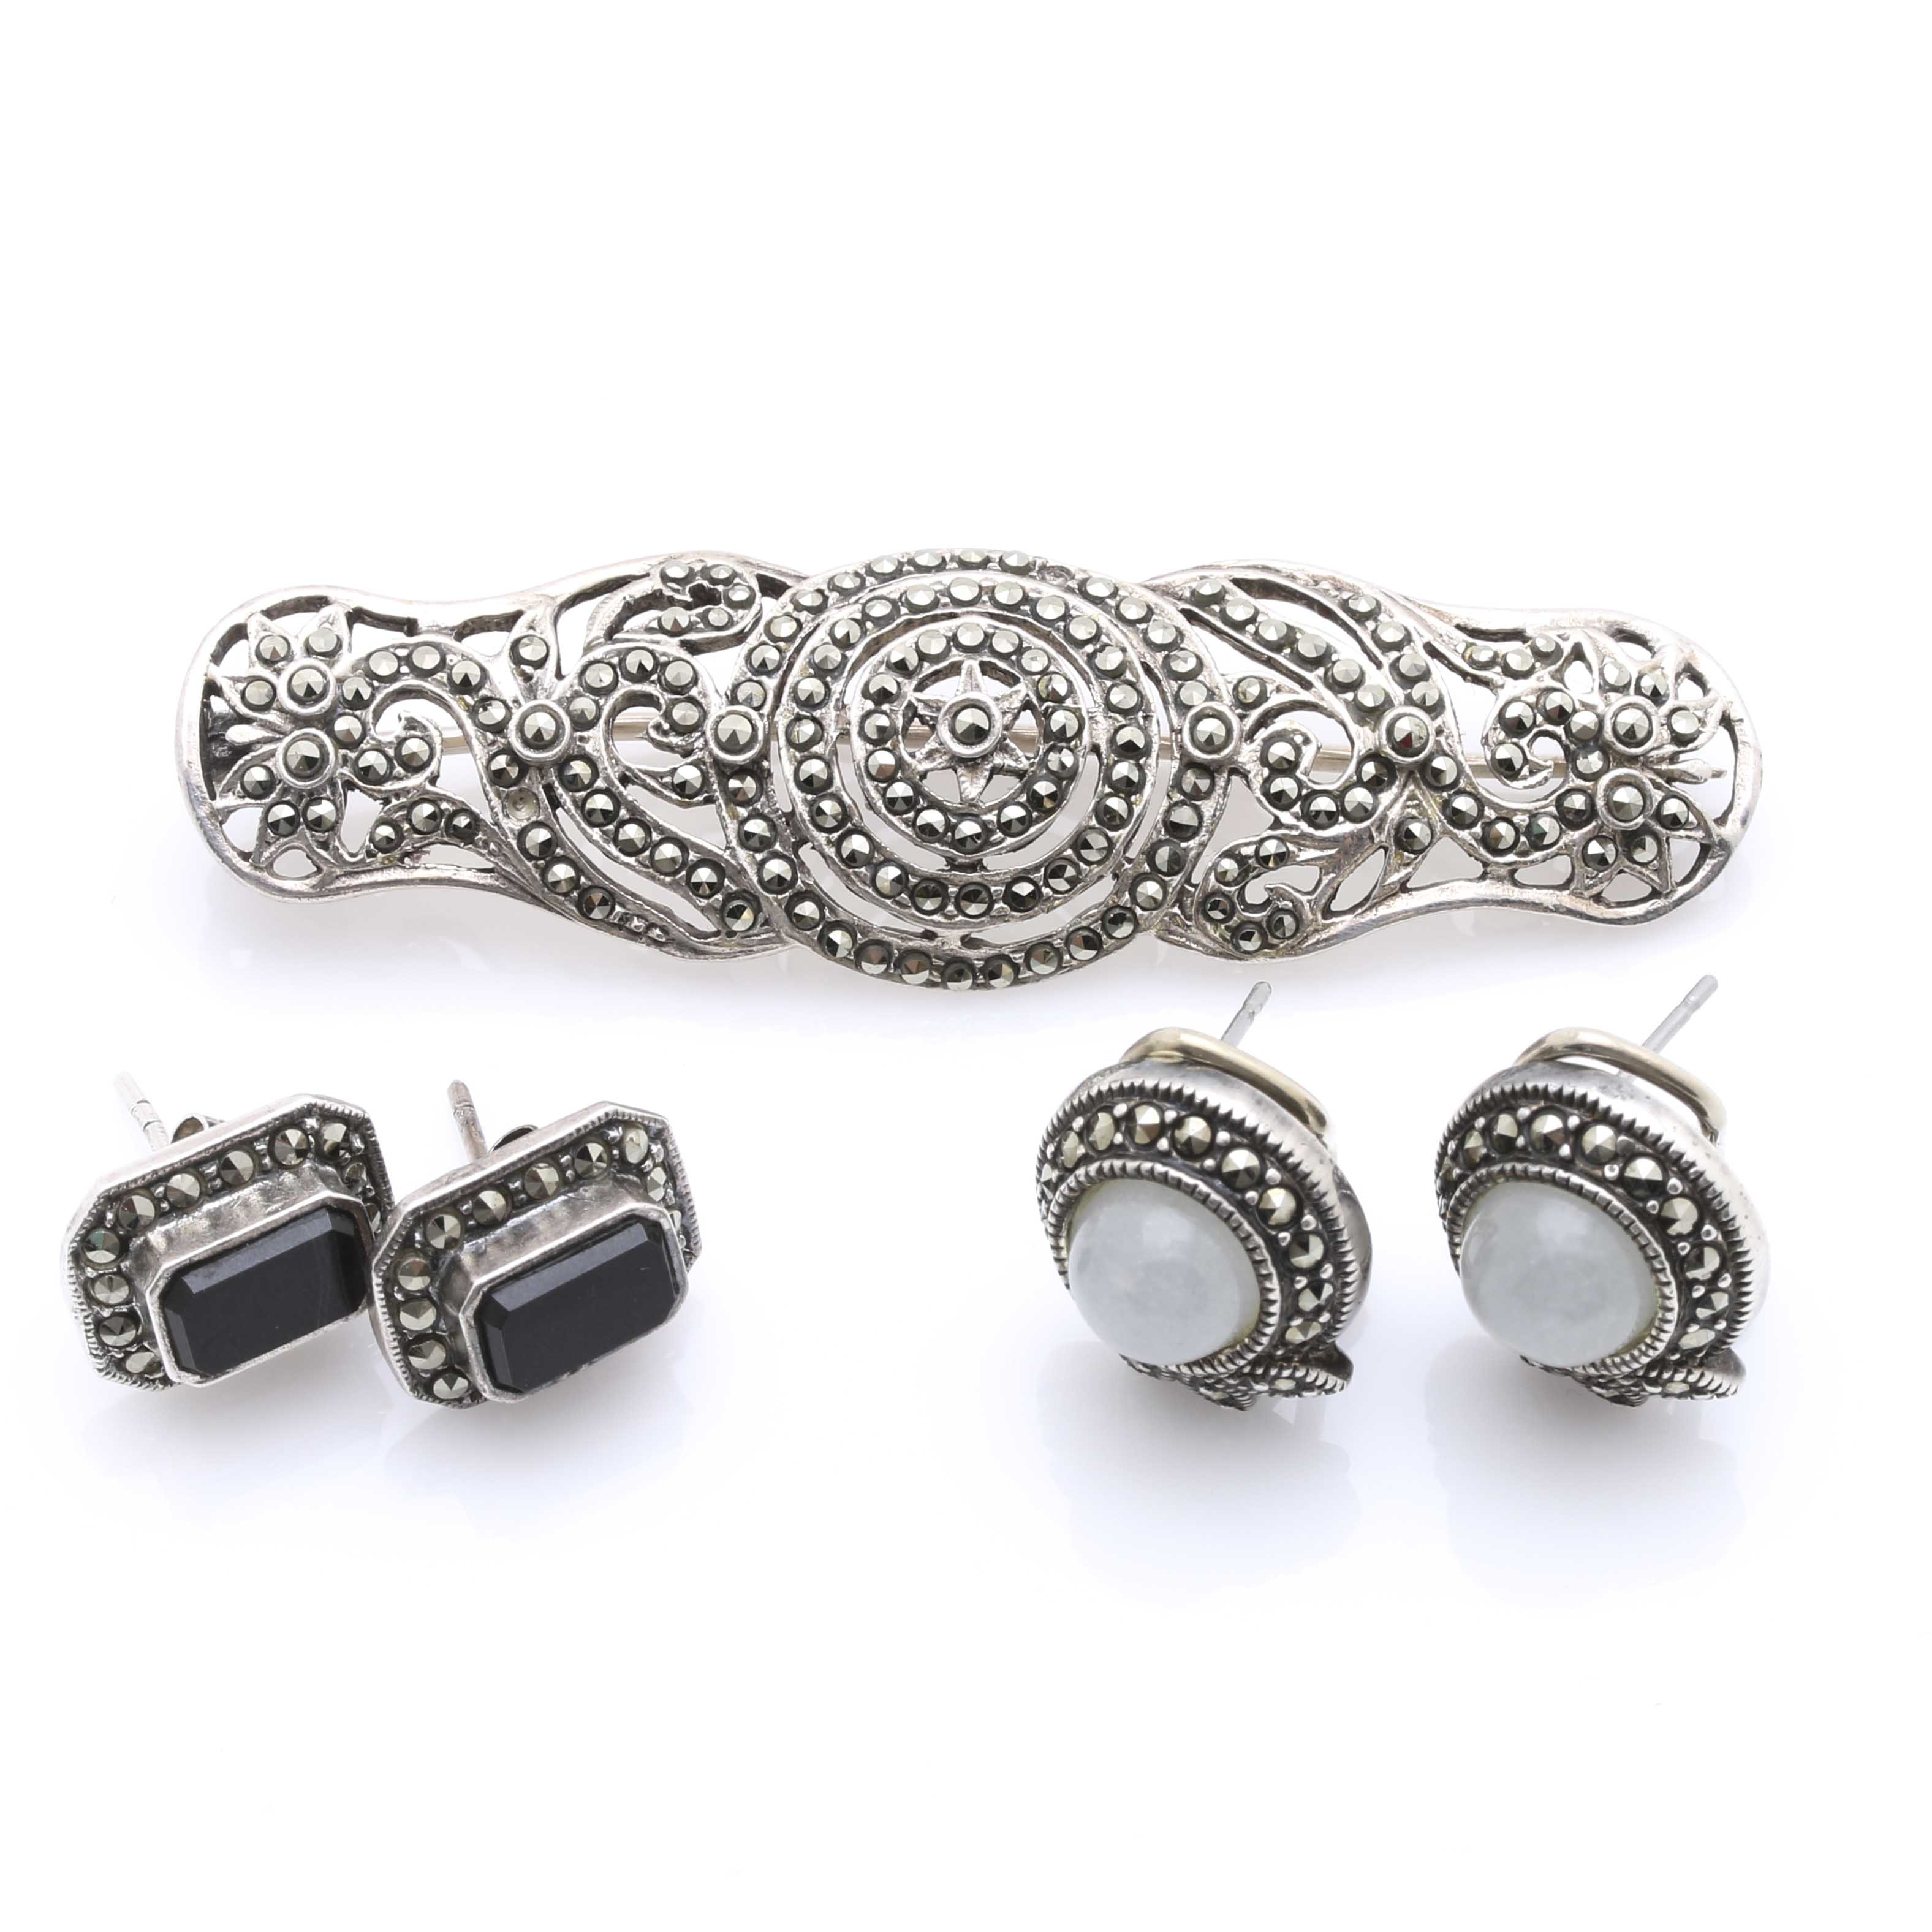 Sterling Silver Marcasite, Black Onyx, and Quartz Jewelry